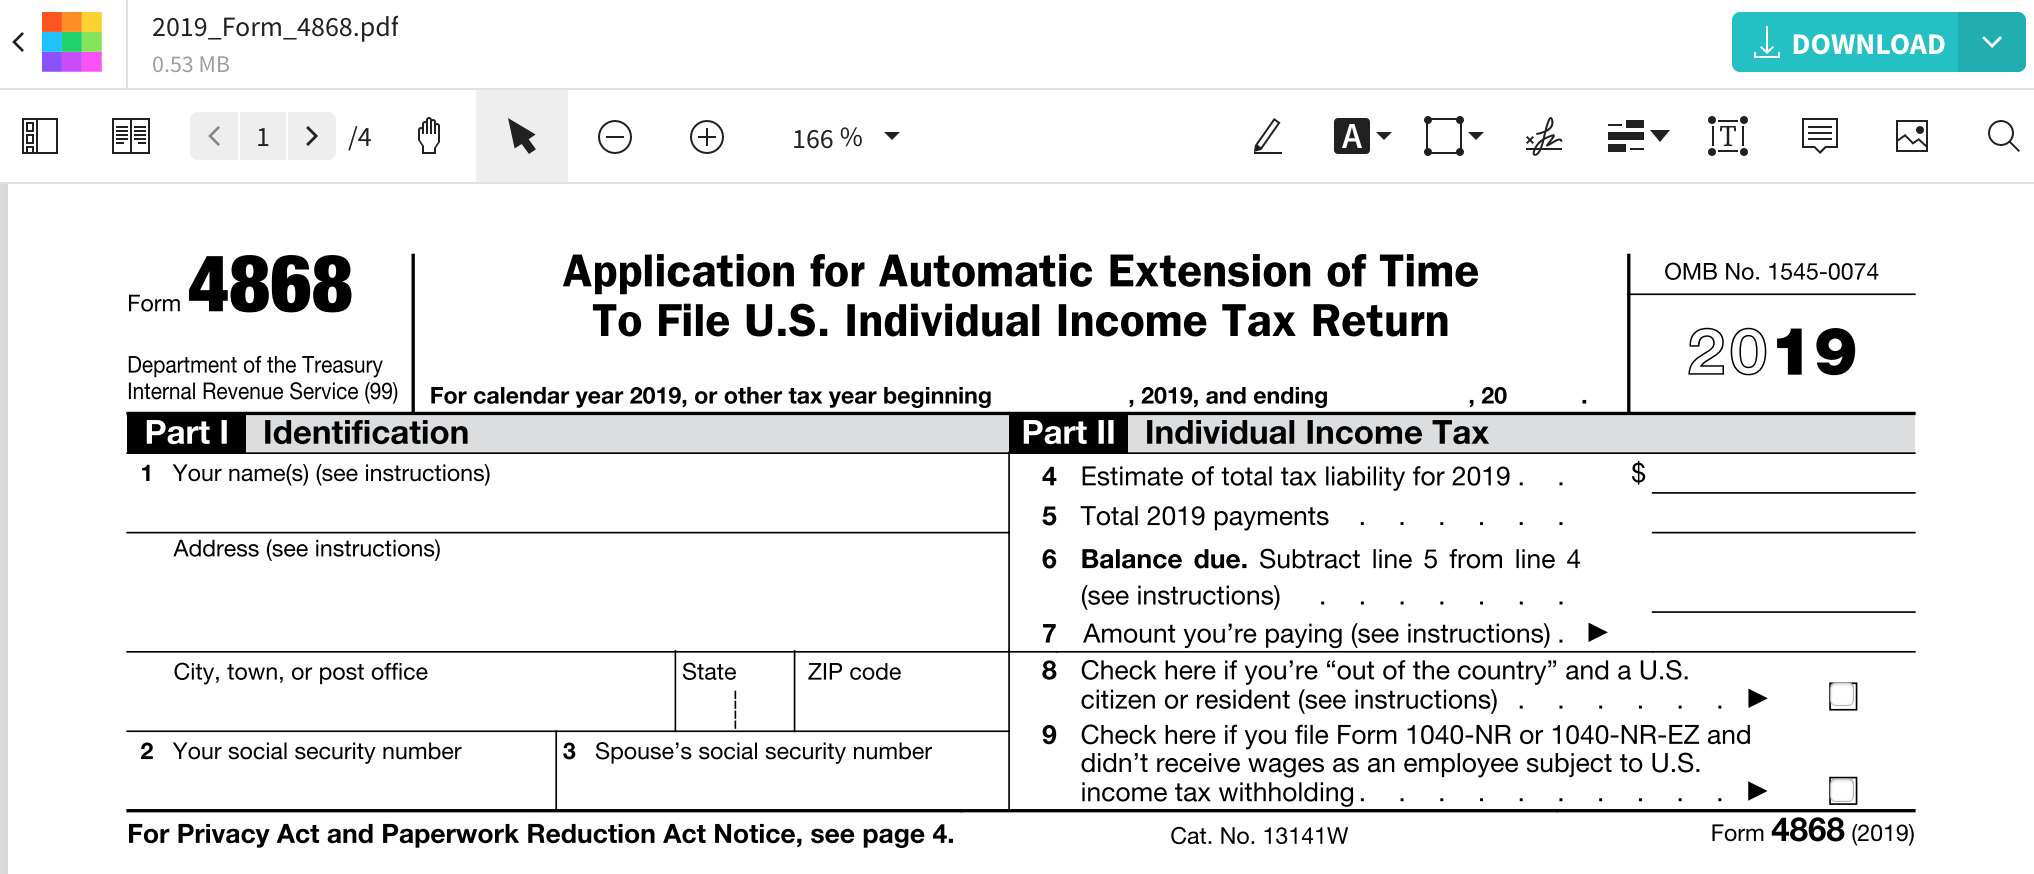 Form 4868 - Fill Irs Extension Form Online For Free | Smallpdf